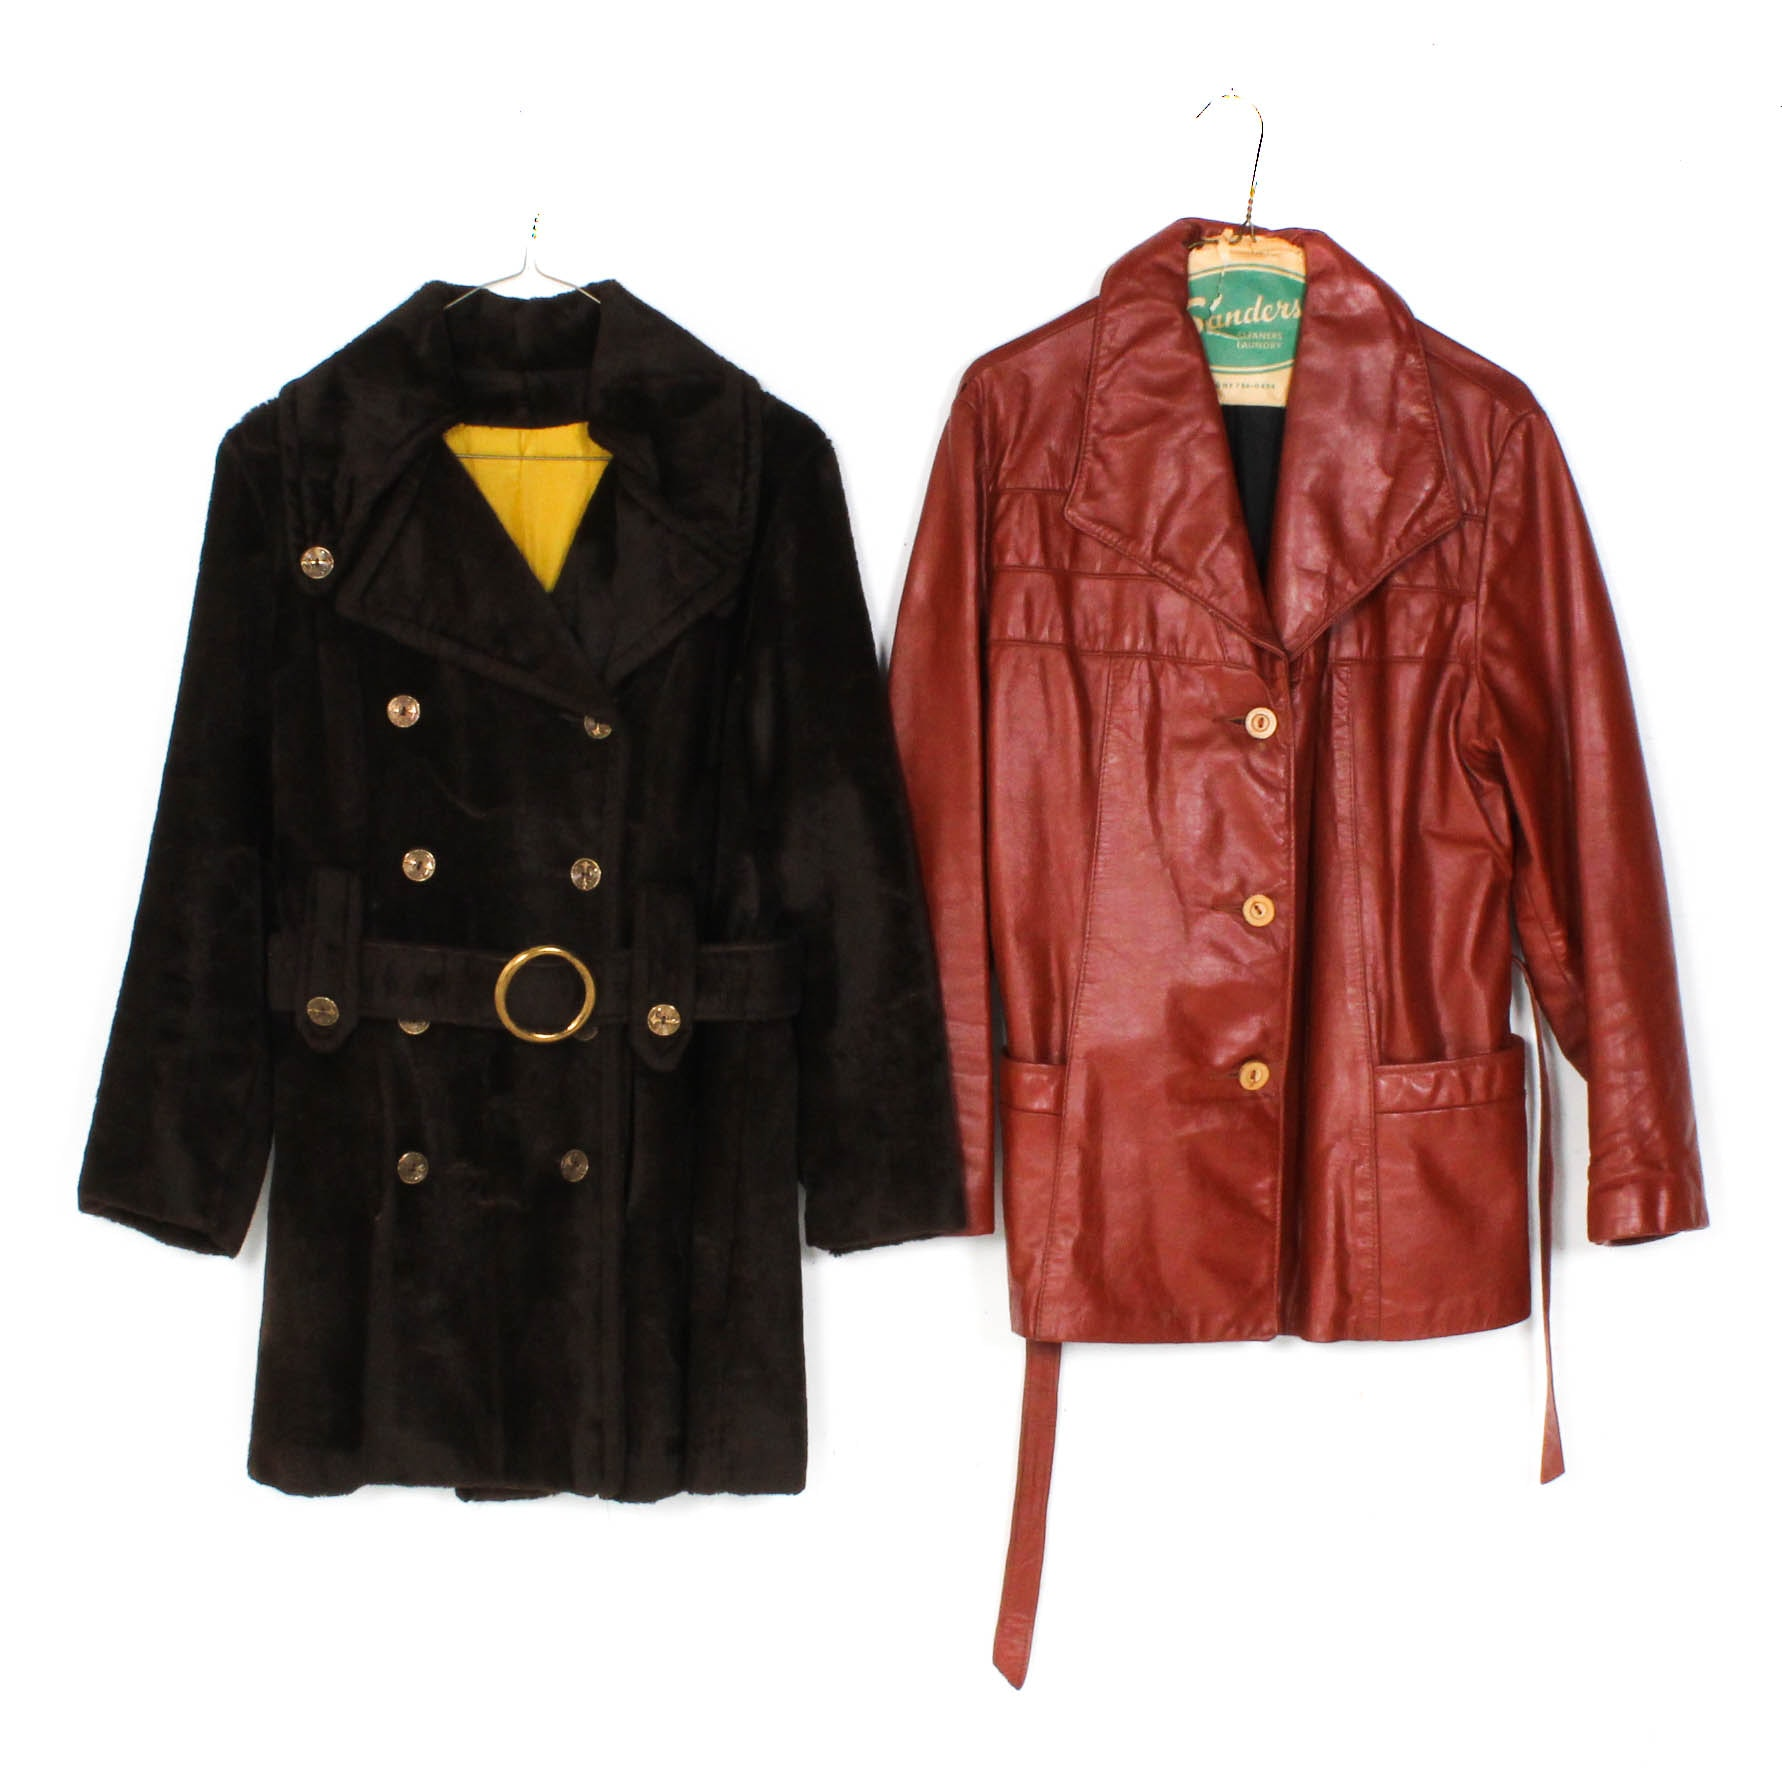 1970s Vintage Faux Fur and Leather Jackets